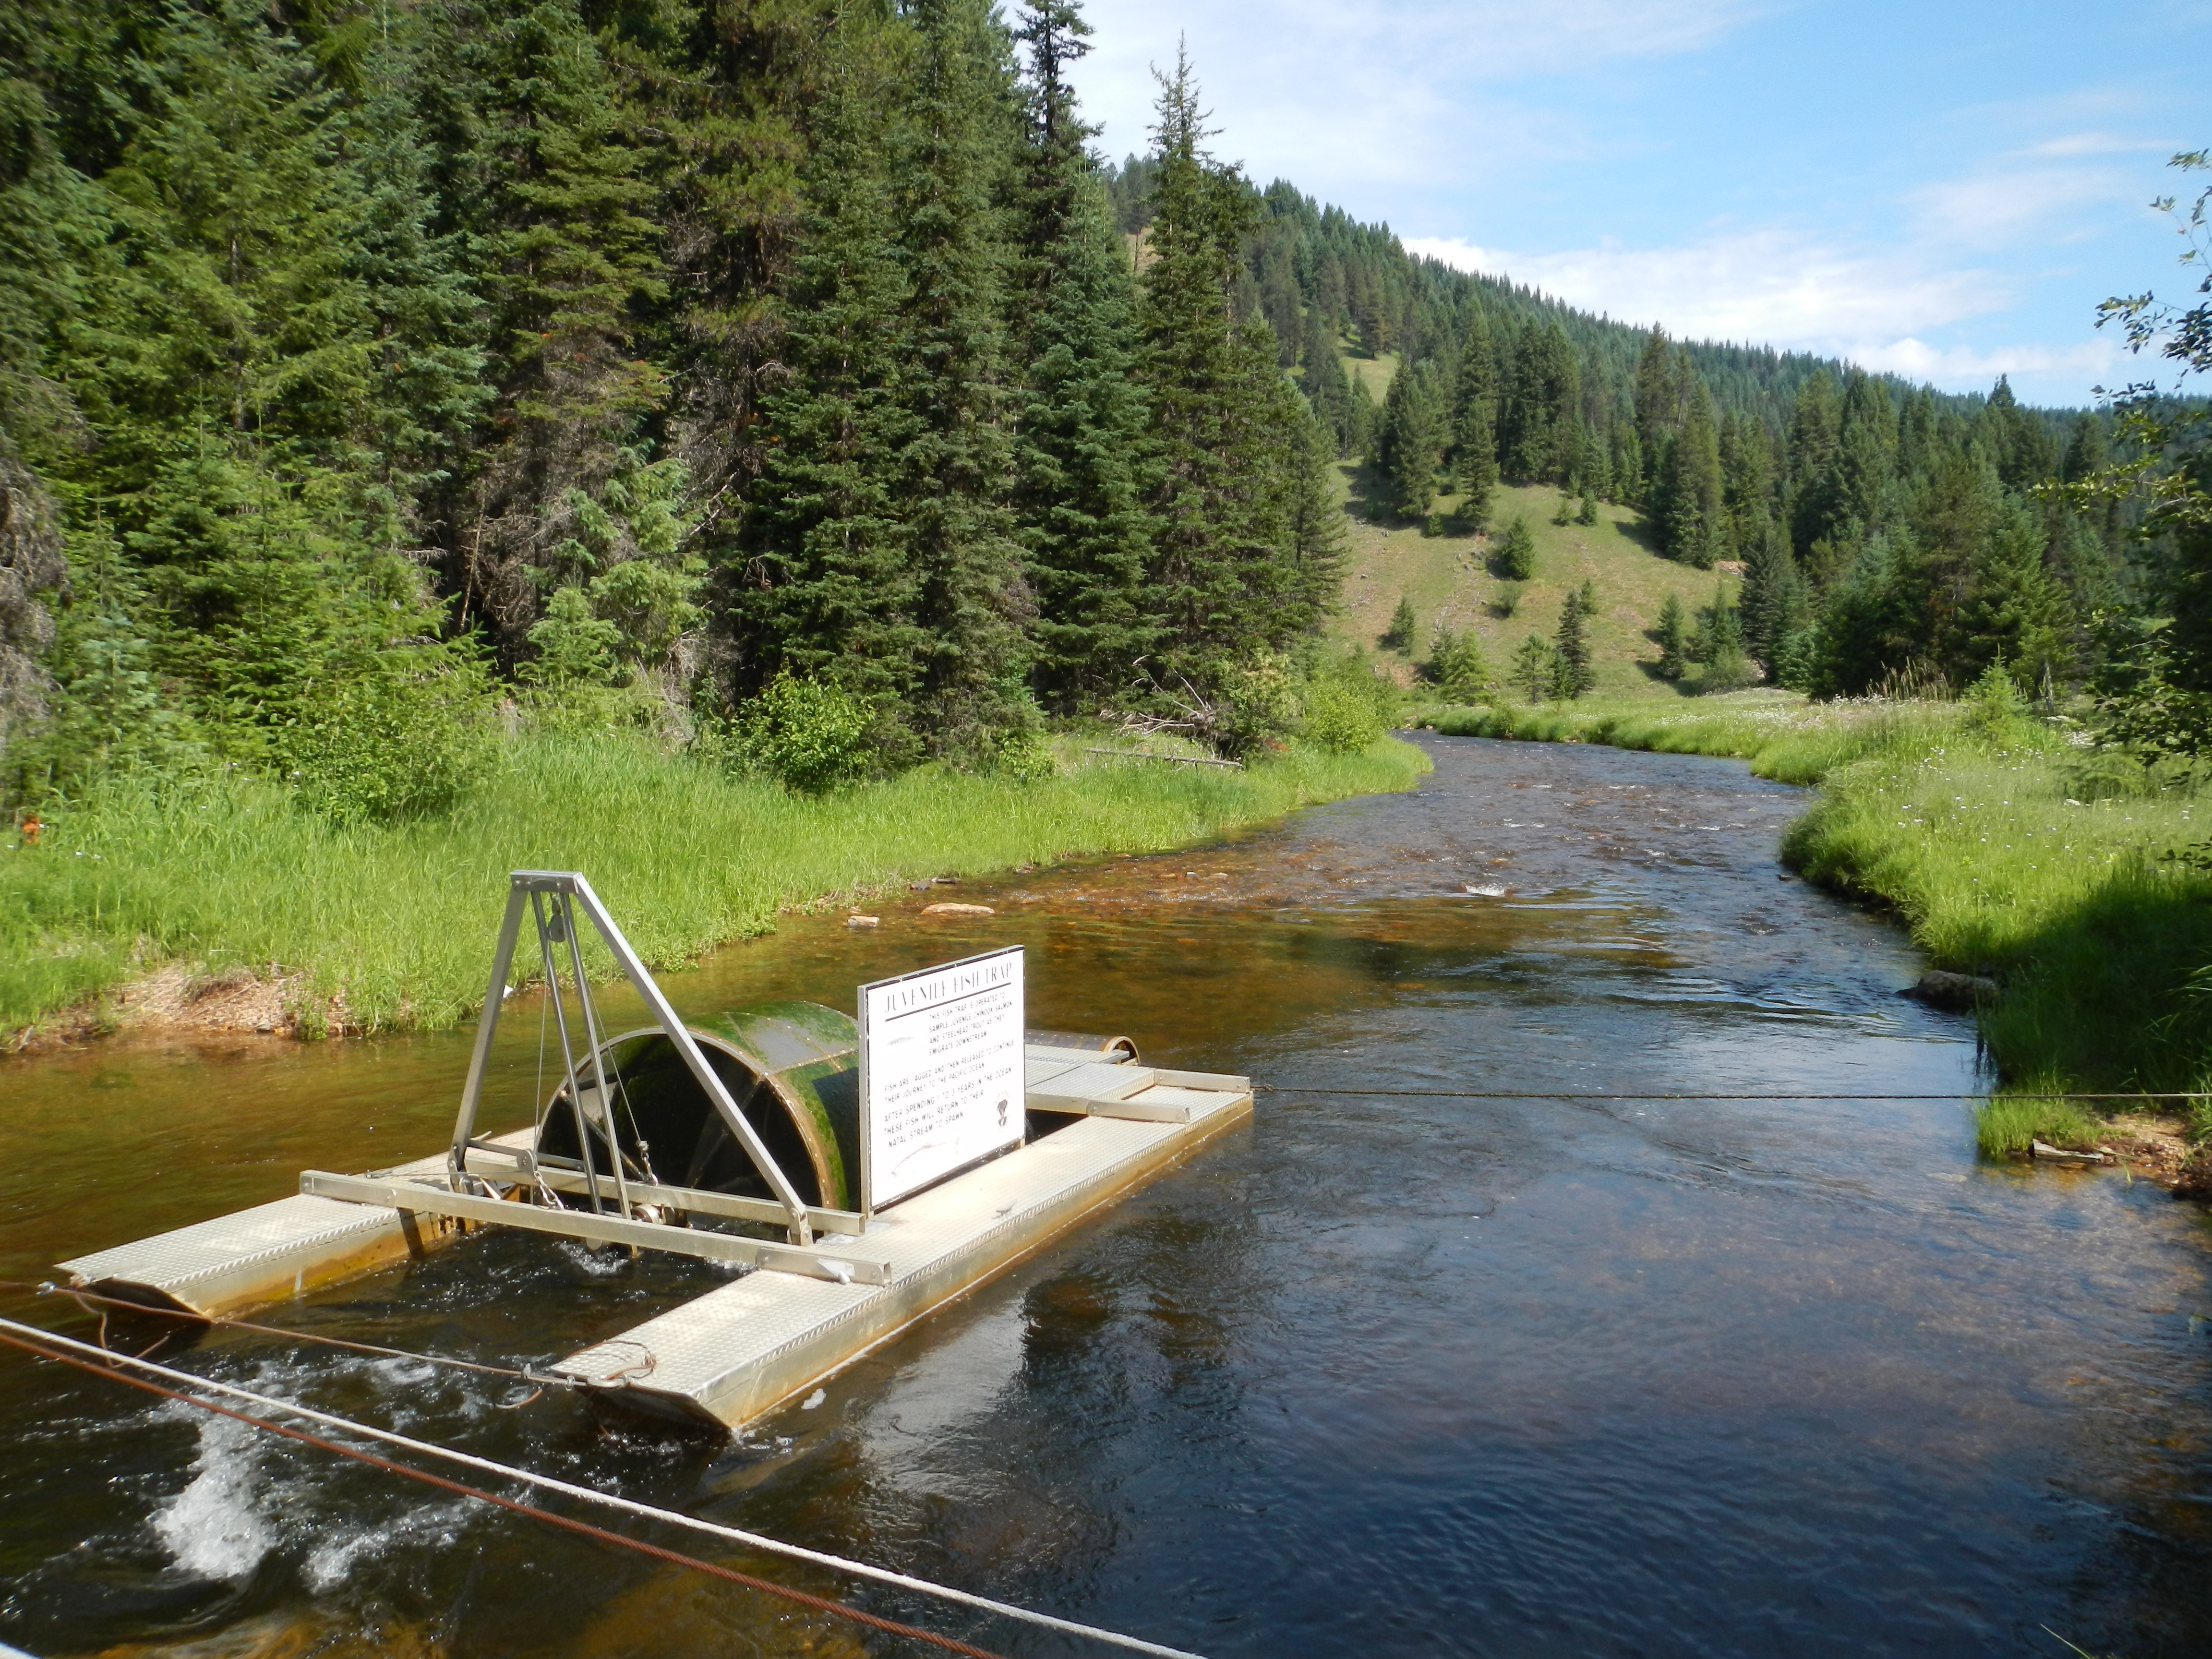 Rotary screw trap for anadromous migration from Crooked River, South Fork of the Clearwater